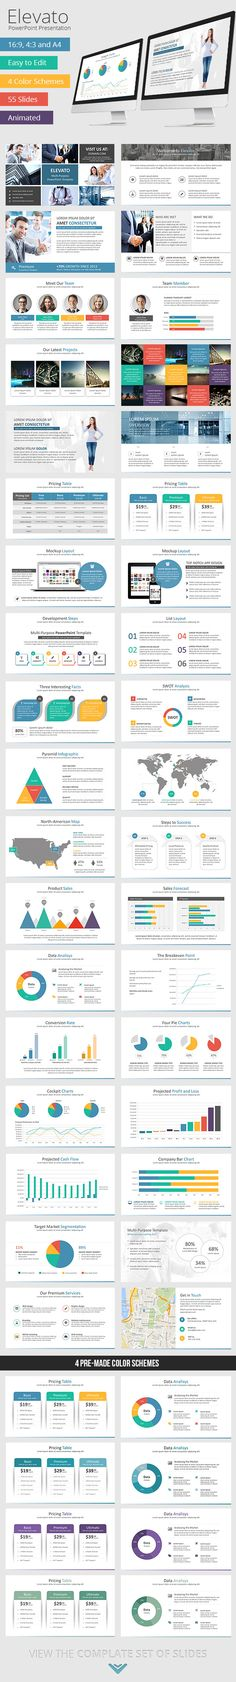 27 best powerpoint templates images on pinterest business elevato powerpoint presentation template flashek Image collections